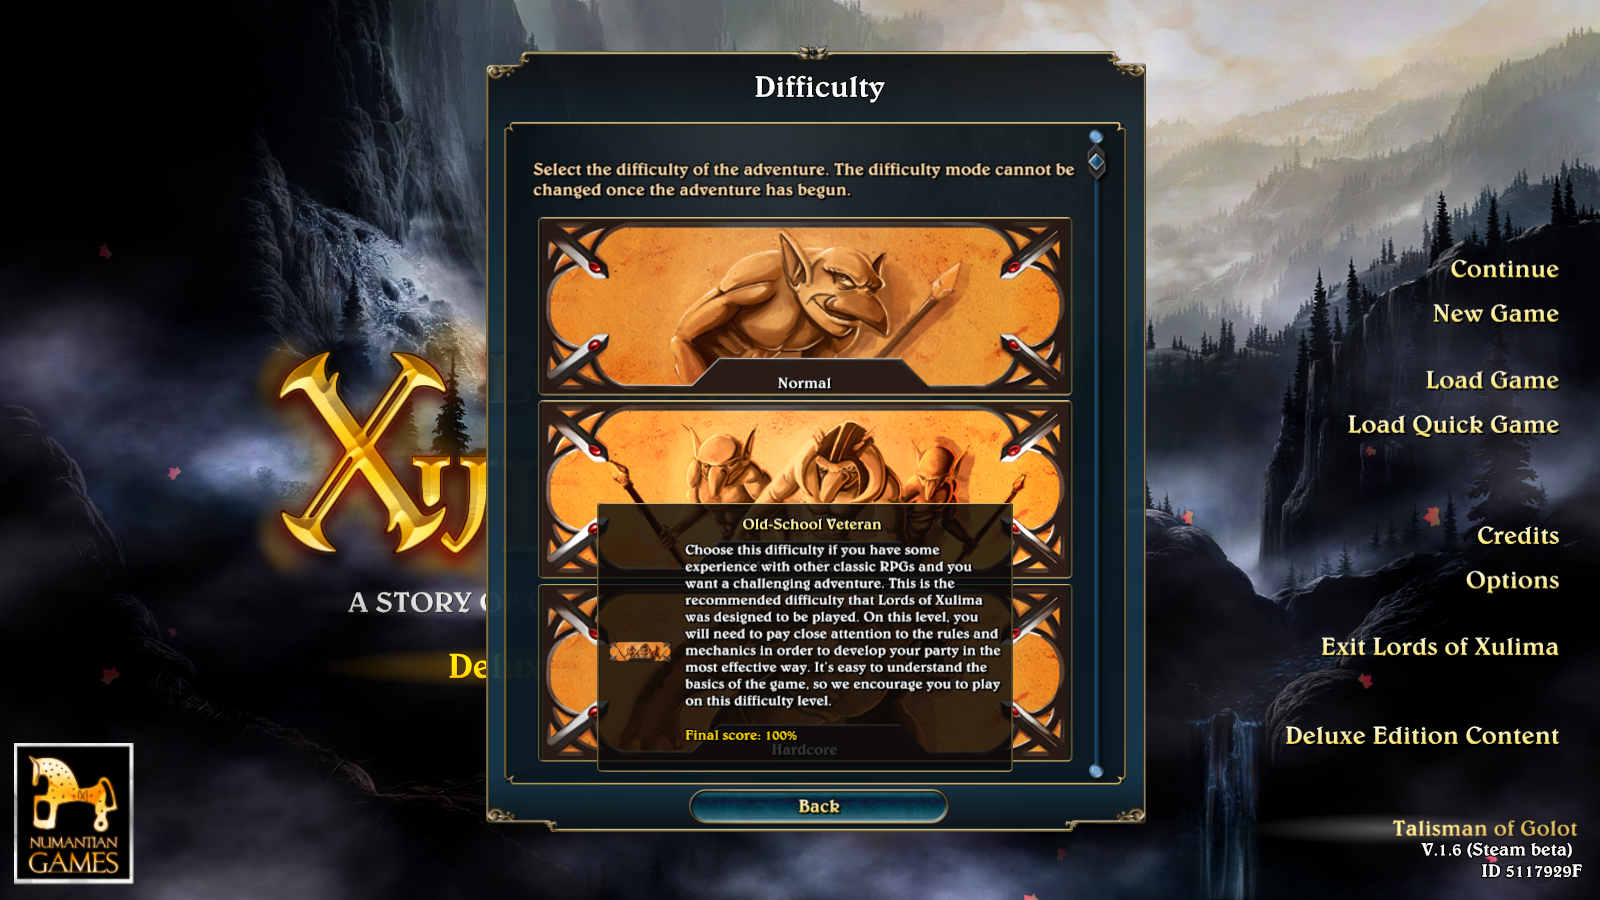 Oldschool-veteran difficulty setting in Lords of Xulima.